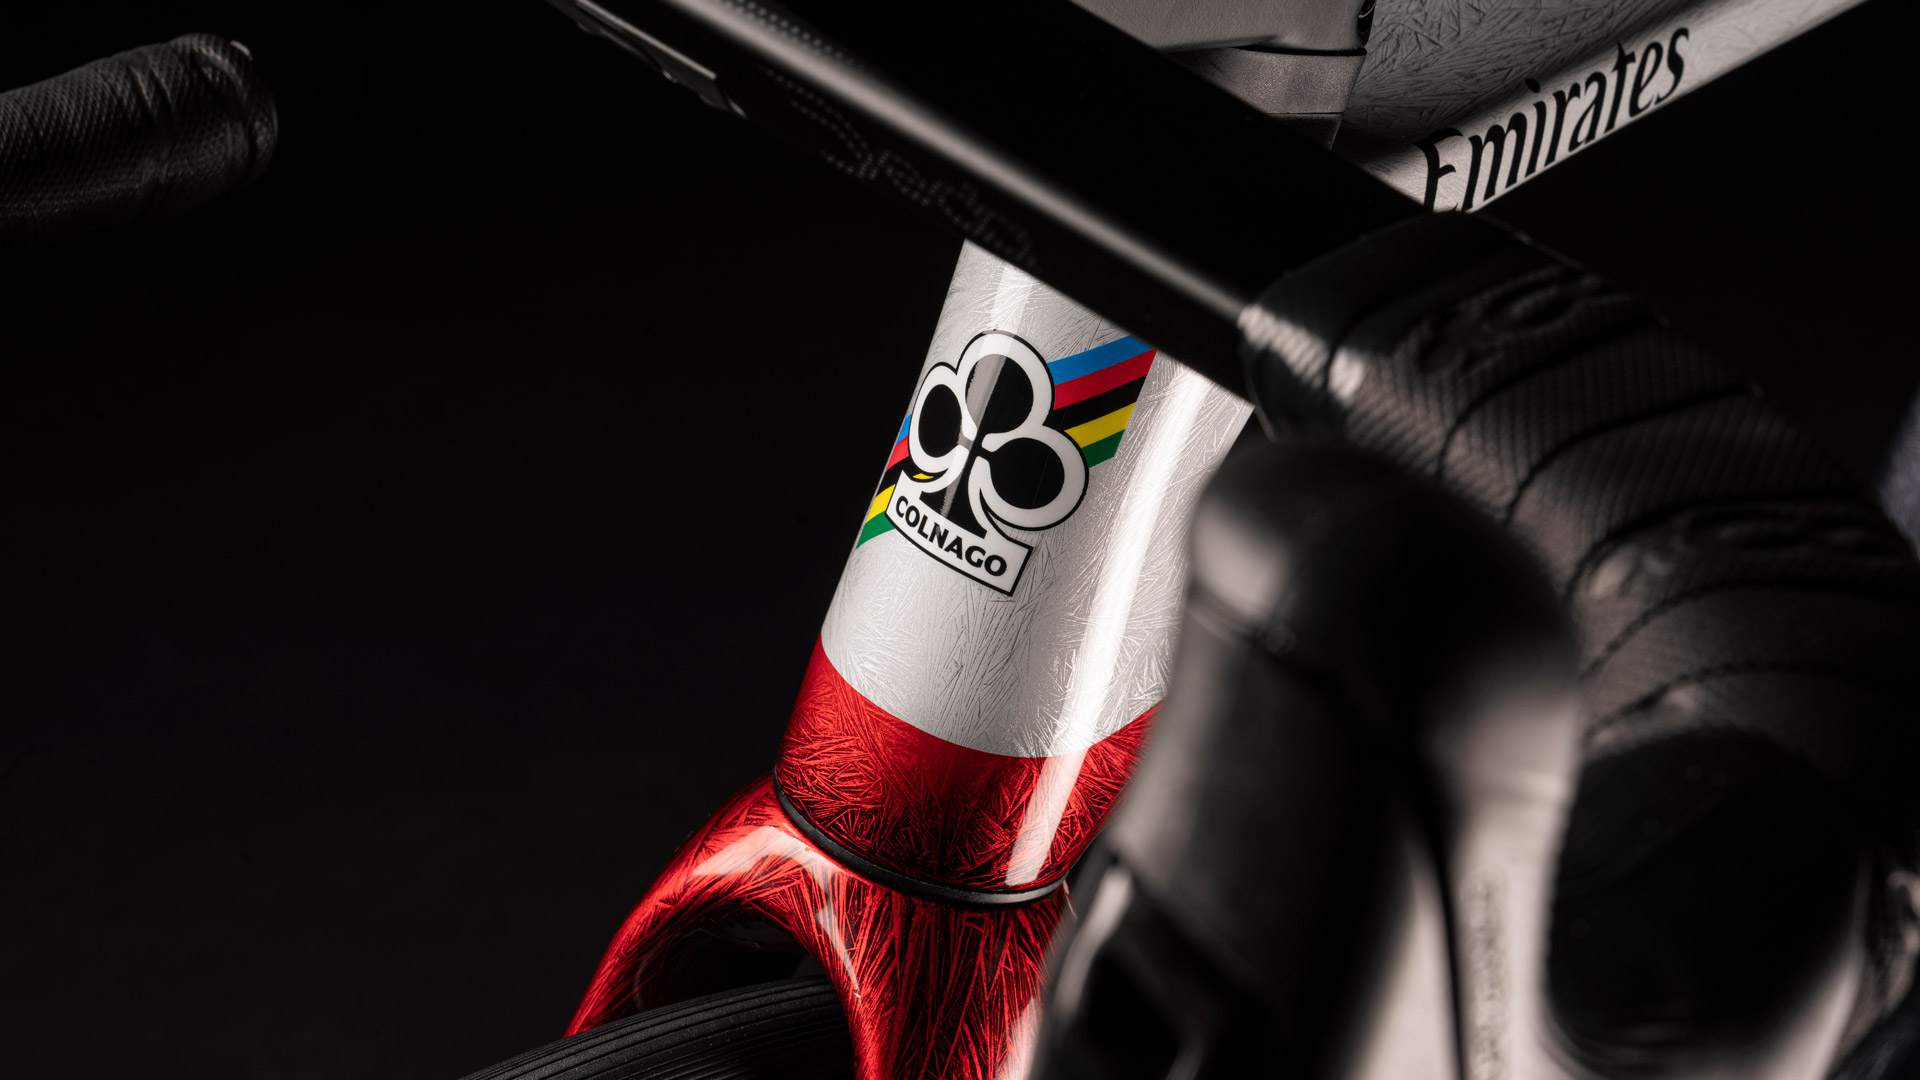 Colnago Ice & Fire V3Rs